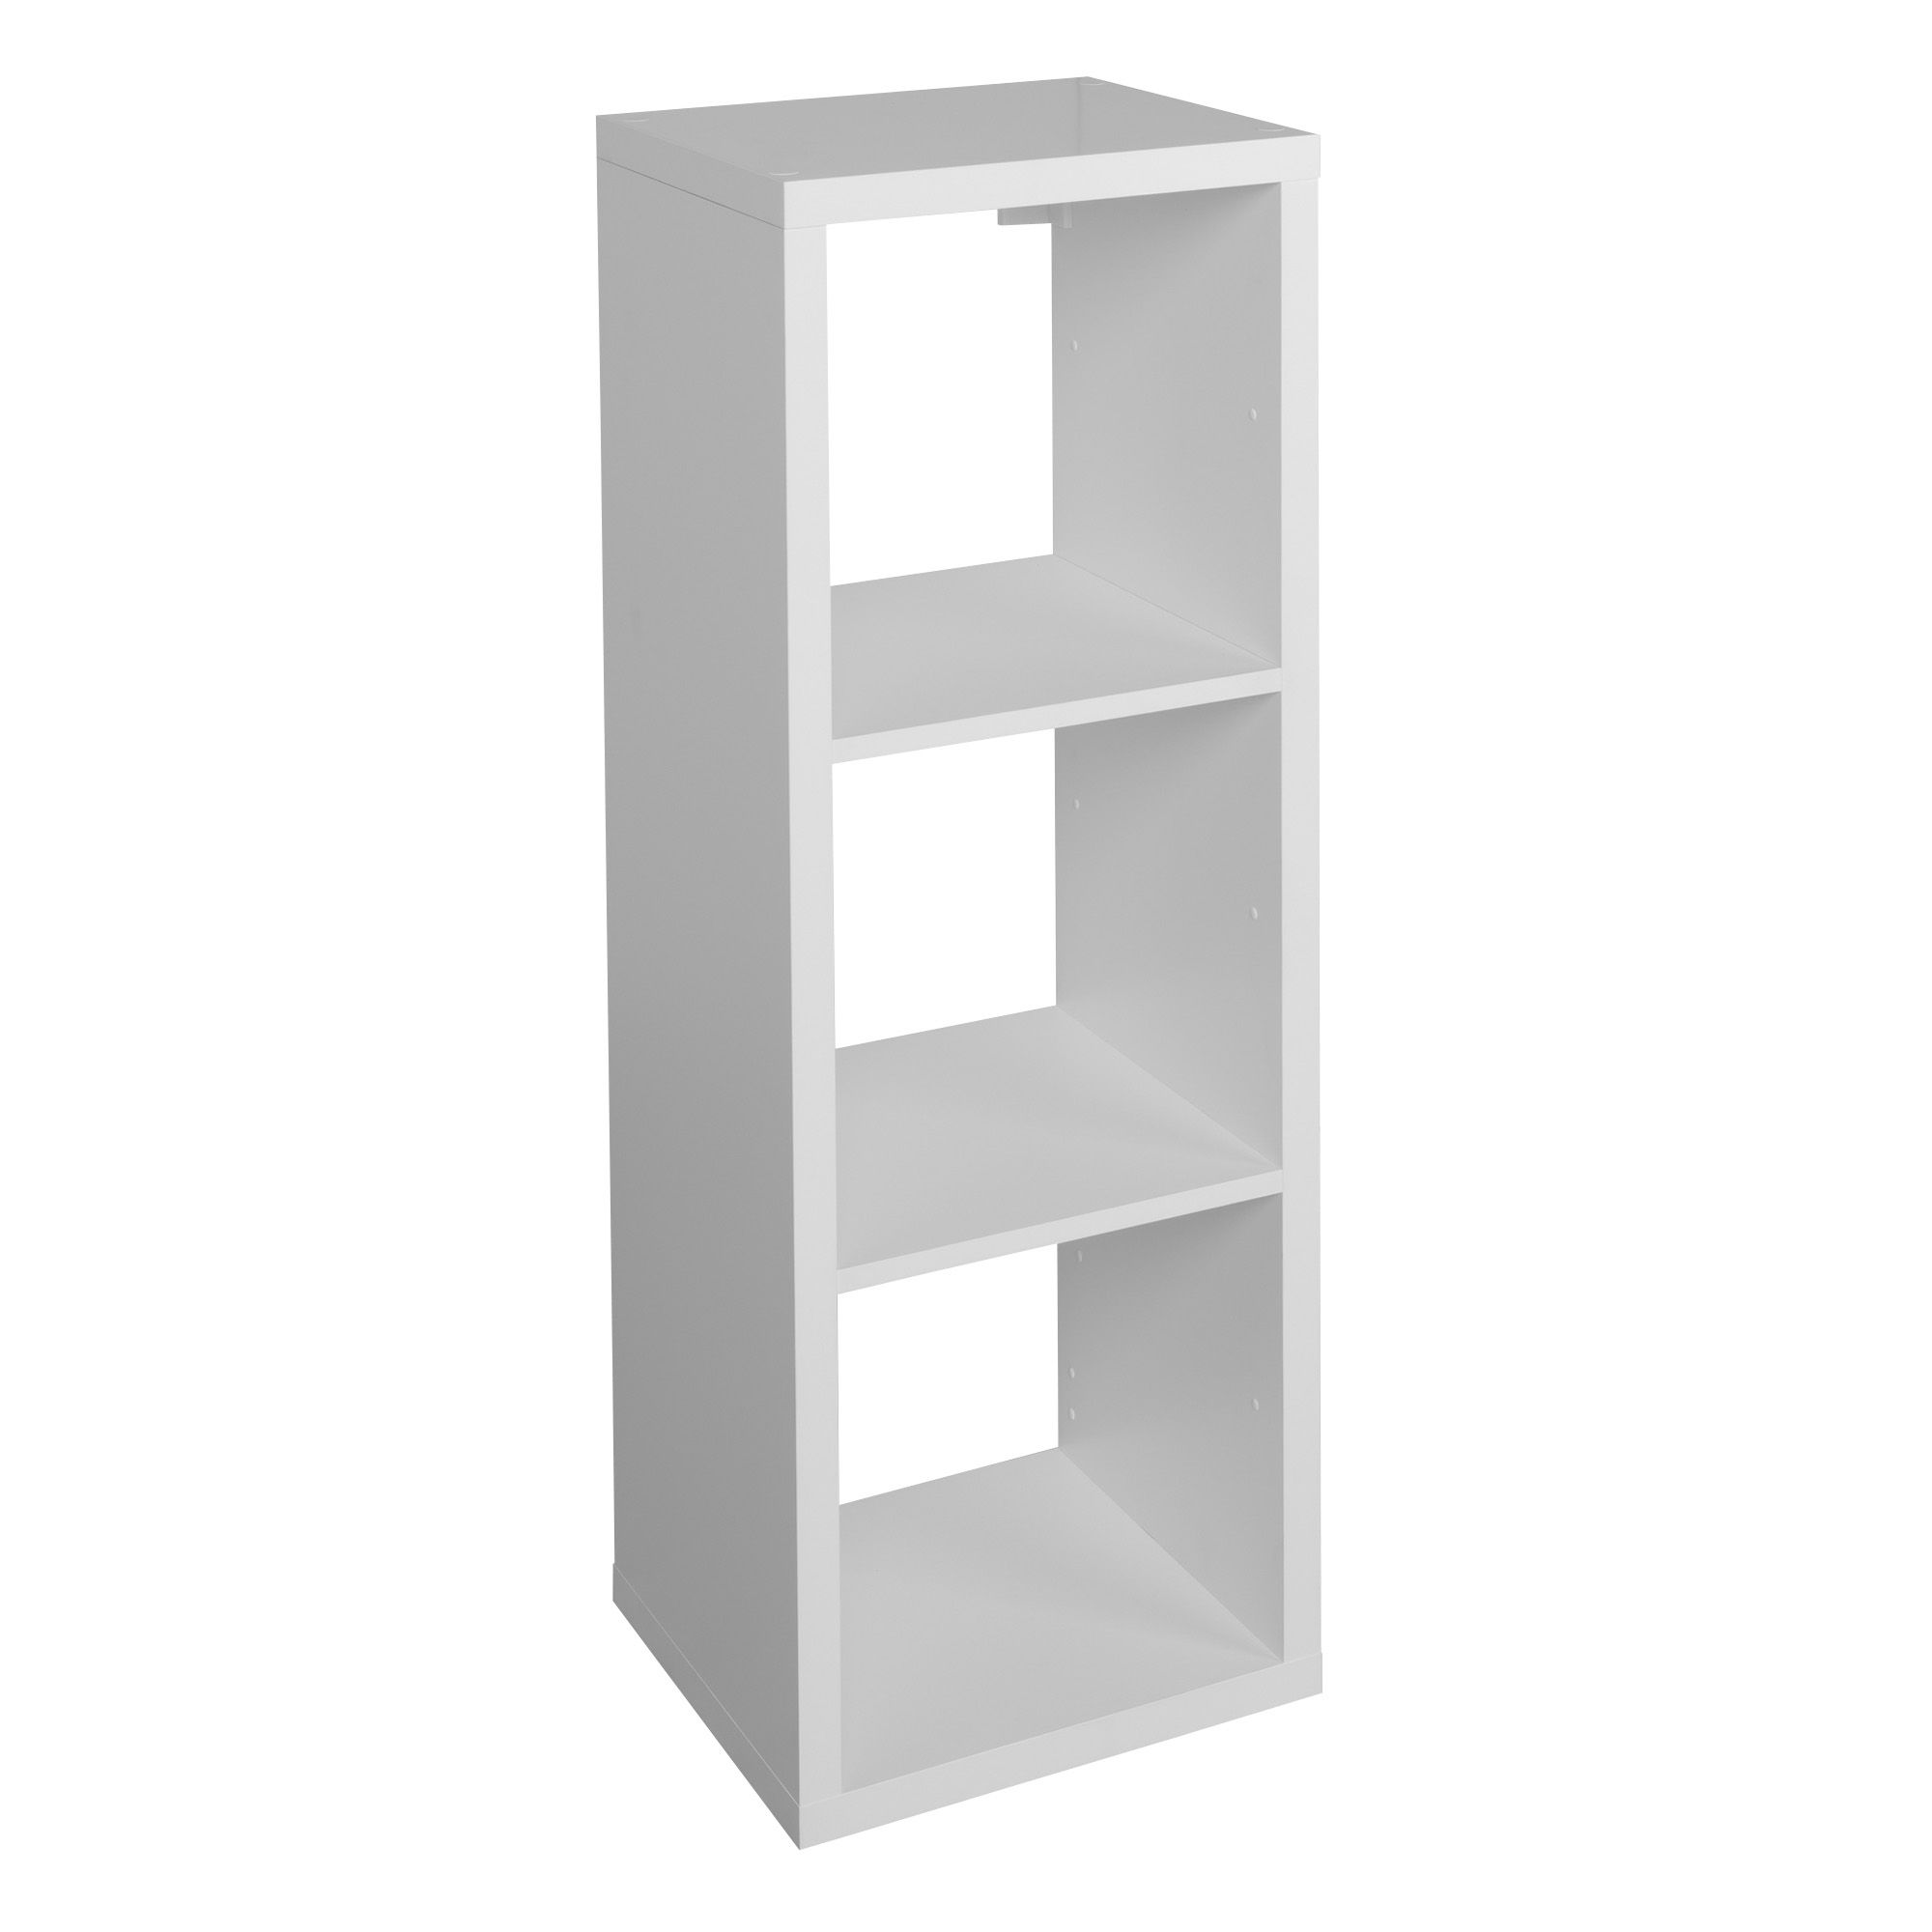 form mixxit white 3 cube shelving unit h 1082mm w 390mm departments diy at b q. Black Bedroom Furniture Sets. Home Design Ideas